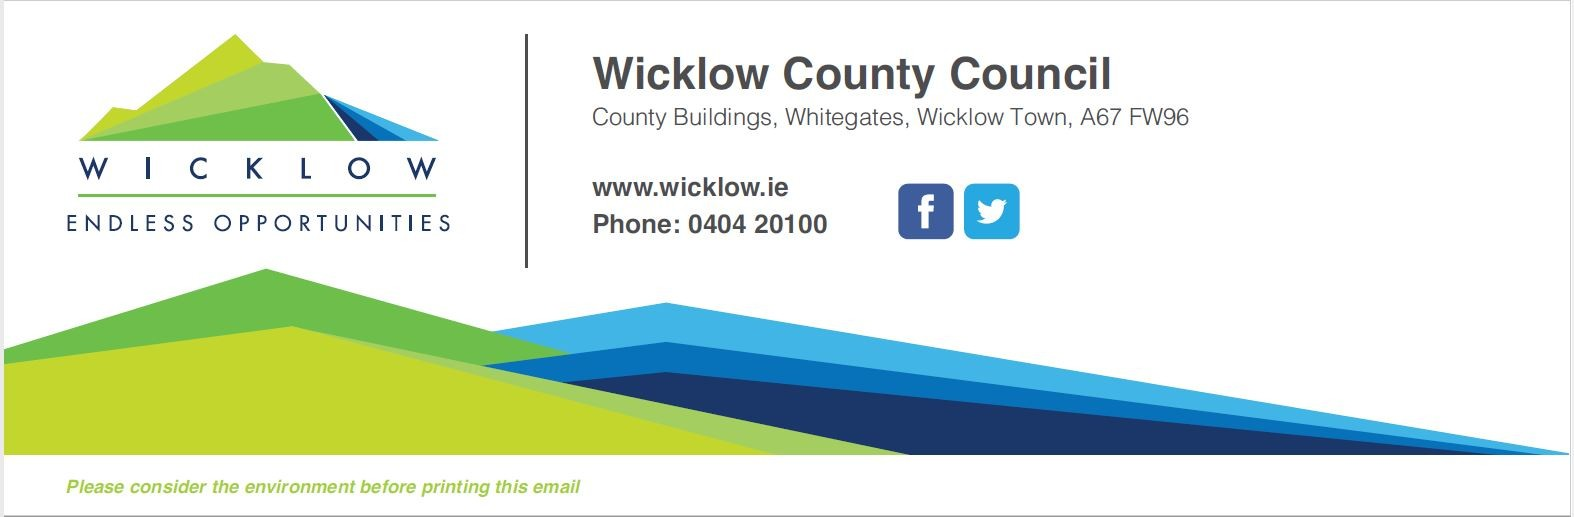 Executive Pa Jobs Wicklow - uselesspenguin.co.uk